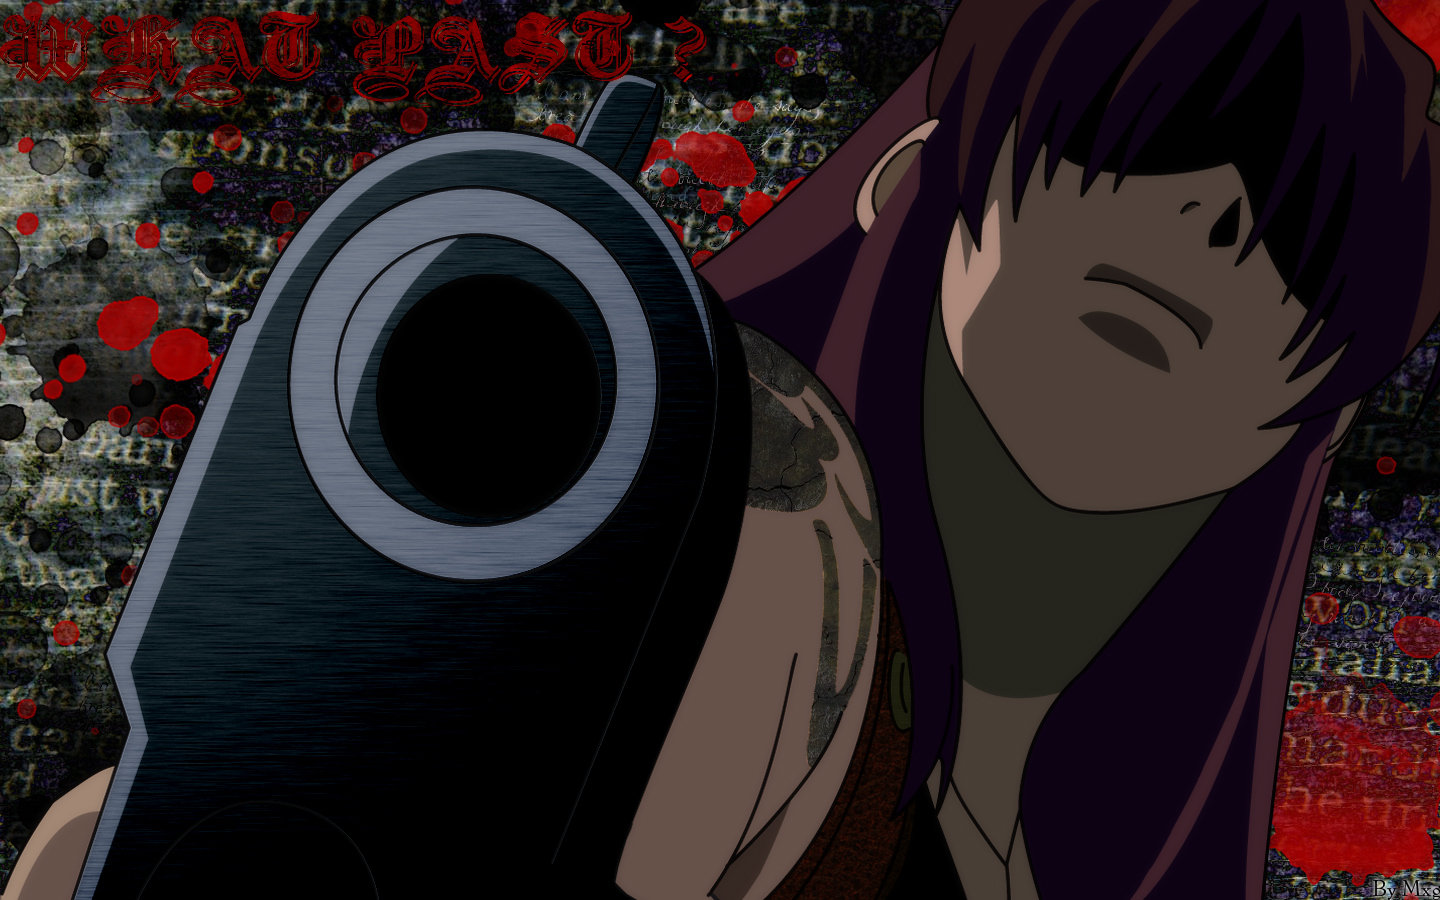 Download hd 1440x900 Black Lagoon desktop background ID:113818 for free